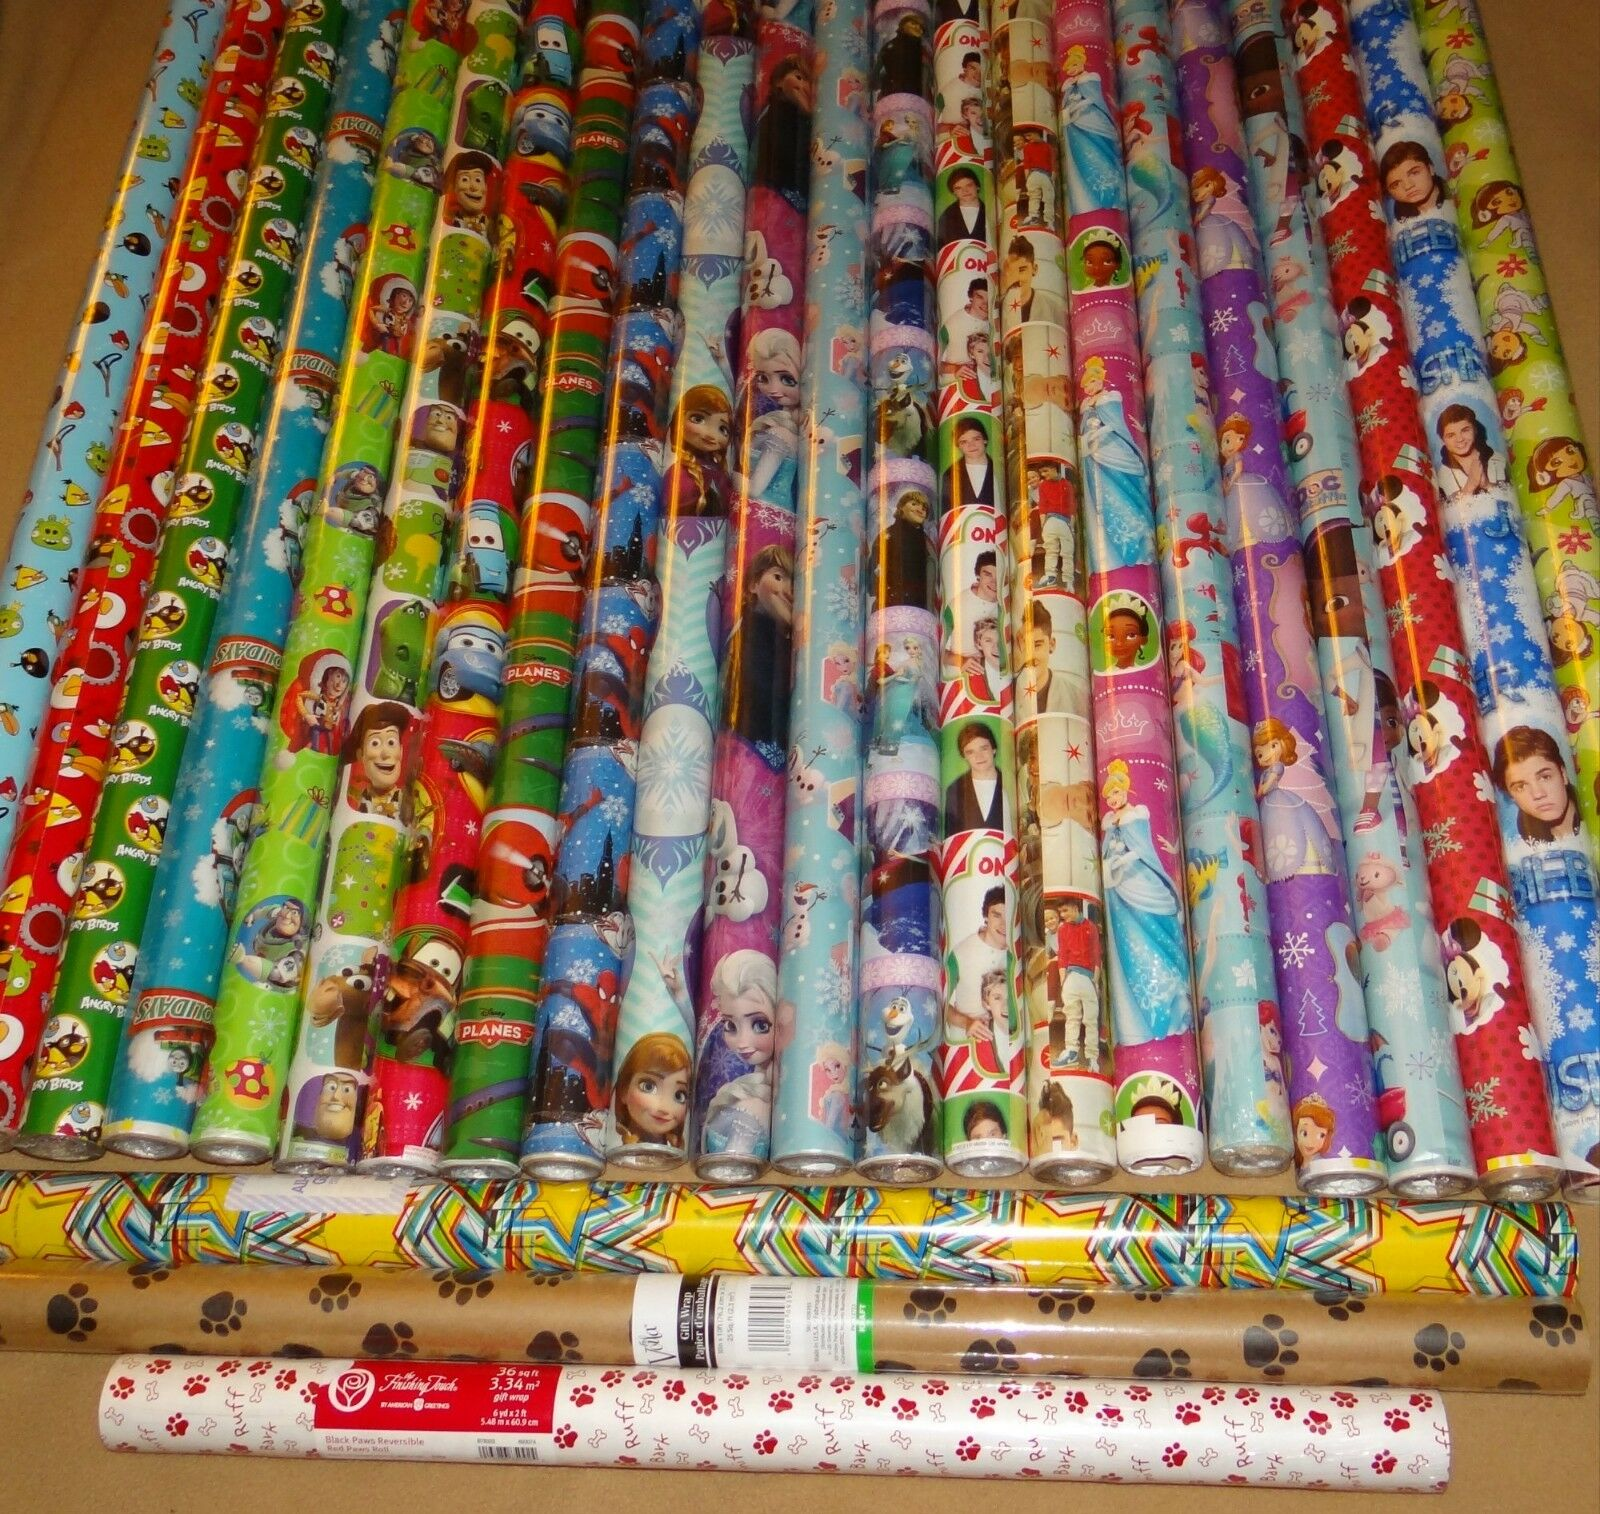 wrapping paper for sale You'll always be ready to wrap gifts thanks to this seasons wrapping paper and   $5999 honey-can-do plaid gift wrap organizer (1) sale $2799 original.